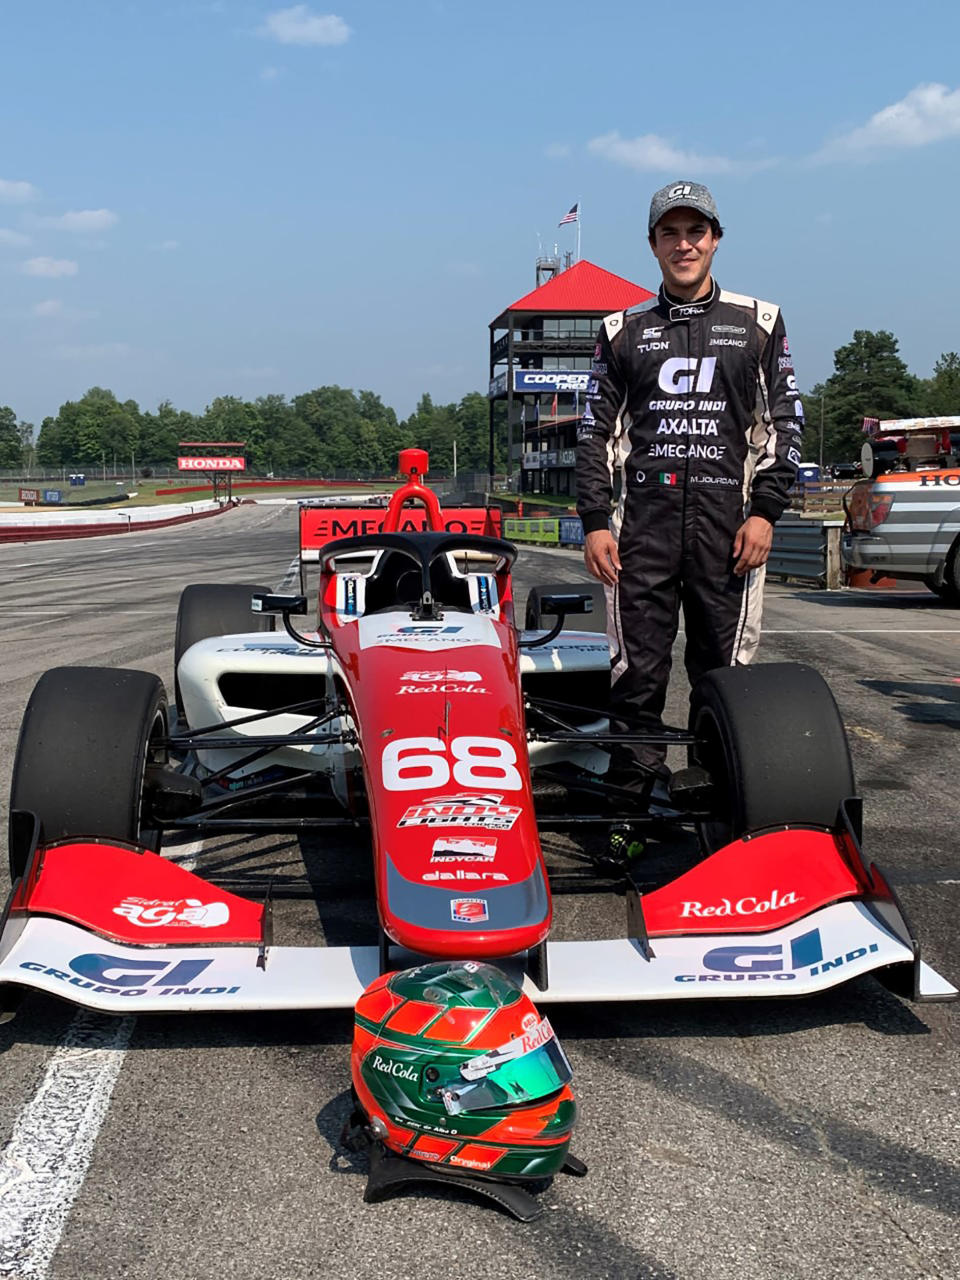 Salvador de Alba Jr., of Guadalajara, poses beside the Indy Lights car he will test at the Mid-Ohio Sports Car Course in Lexington, Ohio, on Saturday, July 3, 2021. Just driving the Lights car for Andretti would have been enough to call his trip to Ohio a success. But de Alba had a fully immersive experience that went beyond his wildest dreams. (AP Photo/Jenna Fryer)